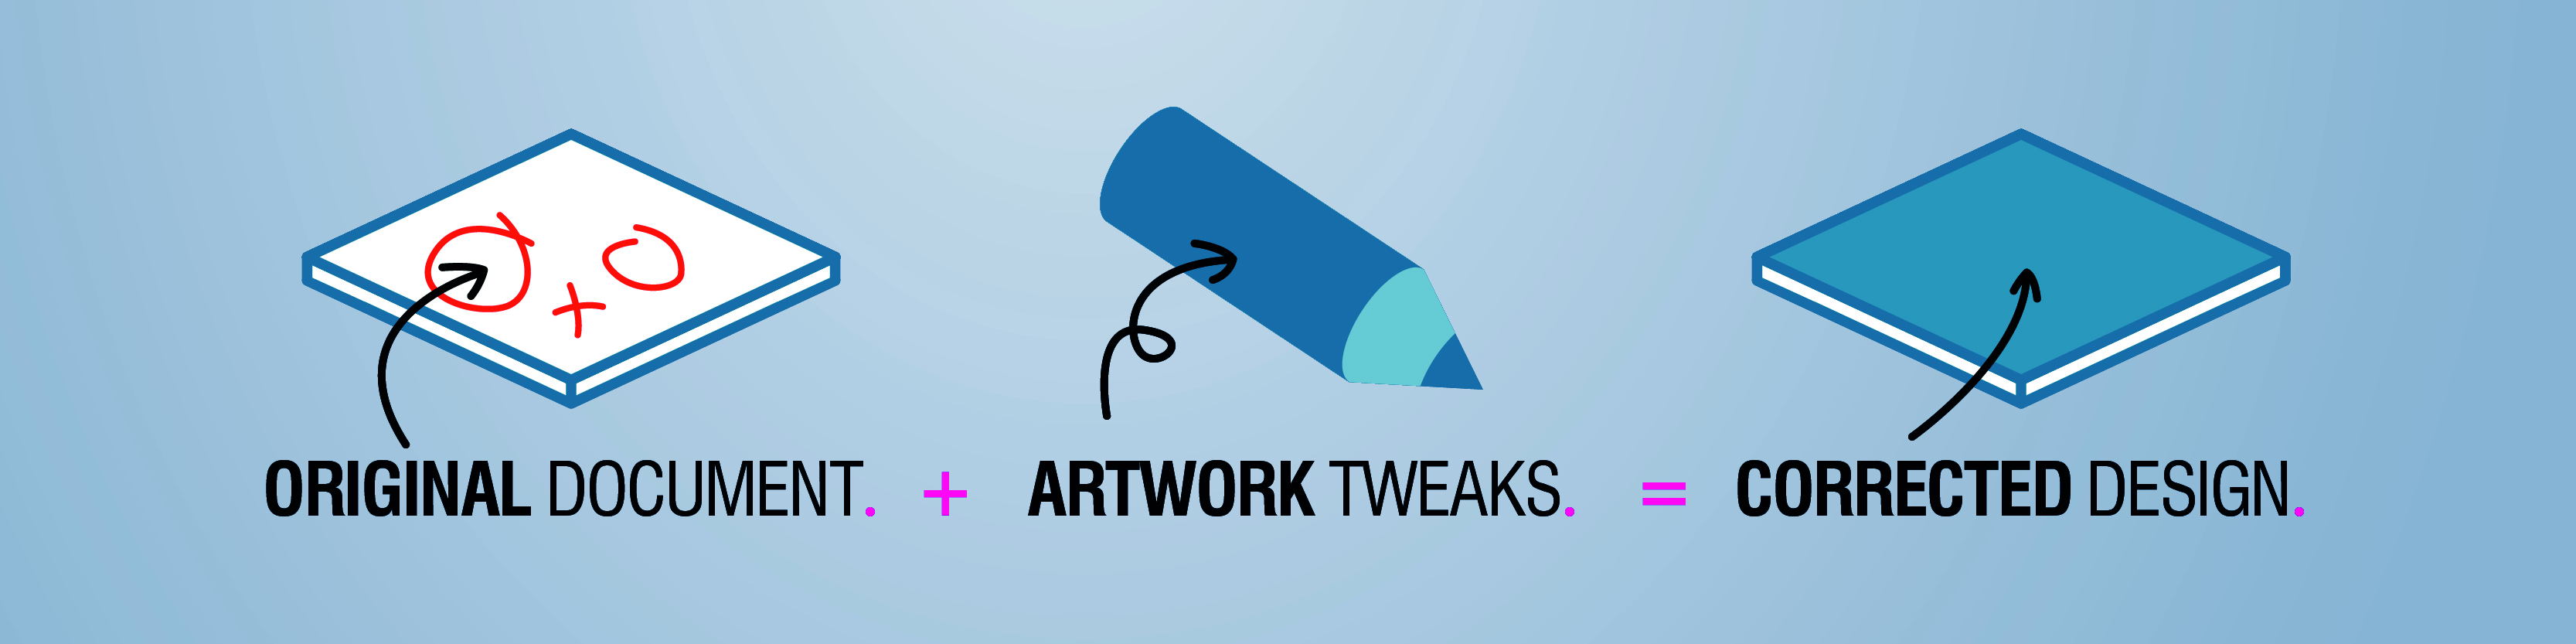 Product Layers - Artwork Tweaks